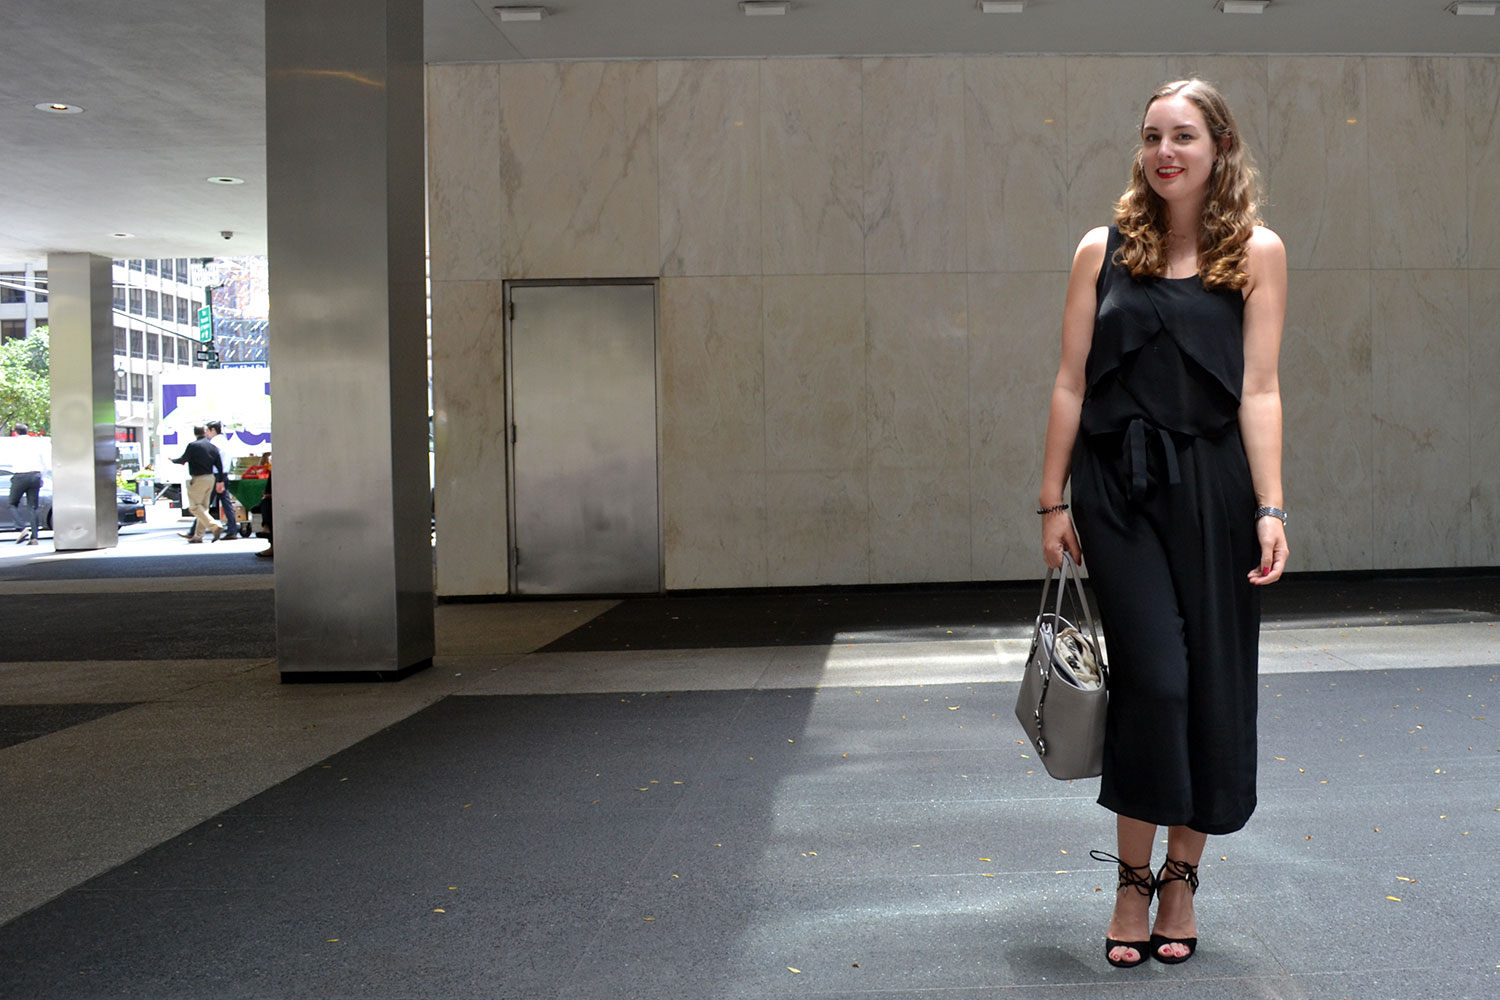 Outfit: Black & Grey // Culottes | New York - DSC 0233